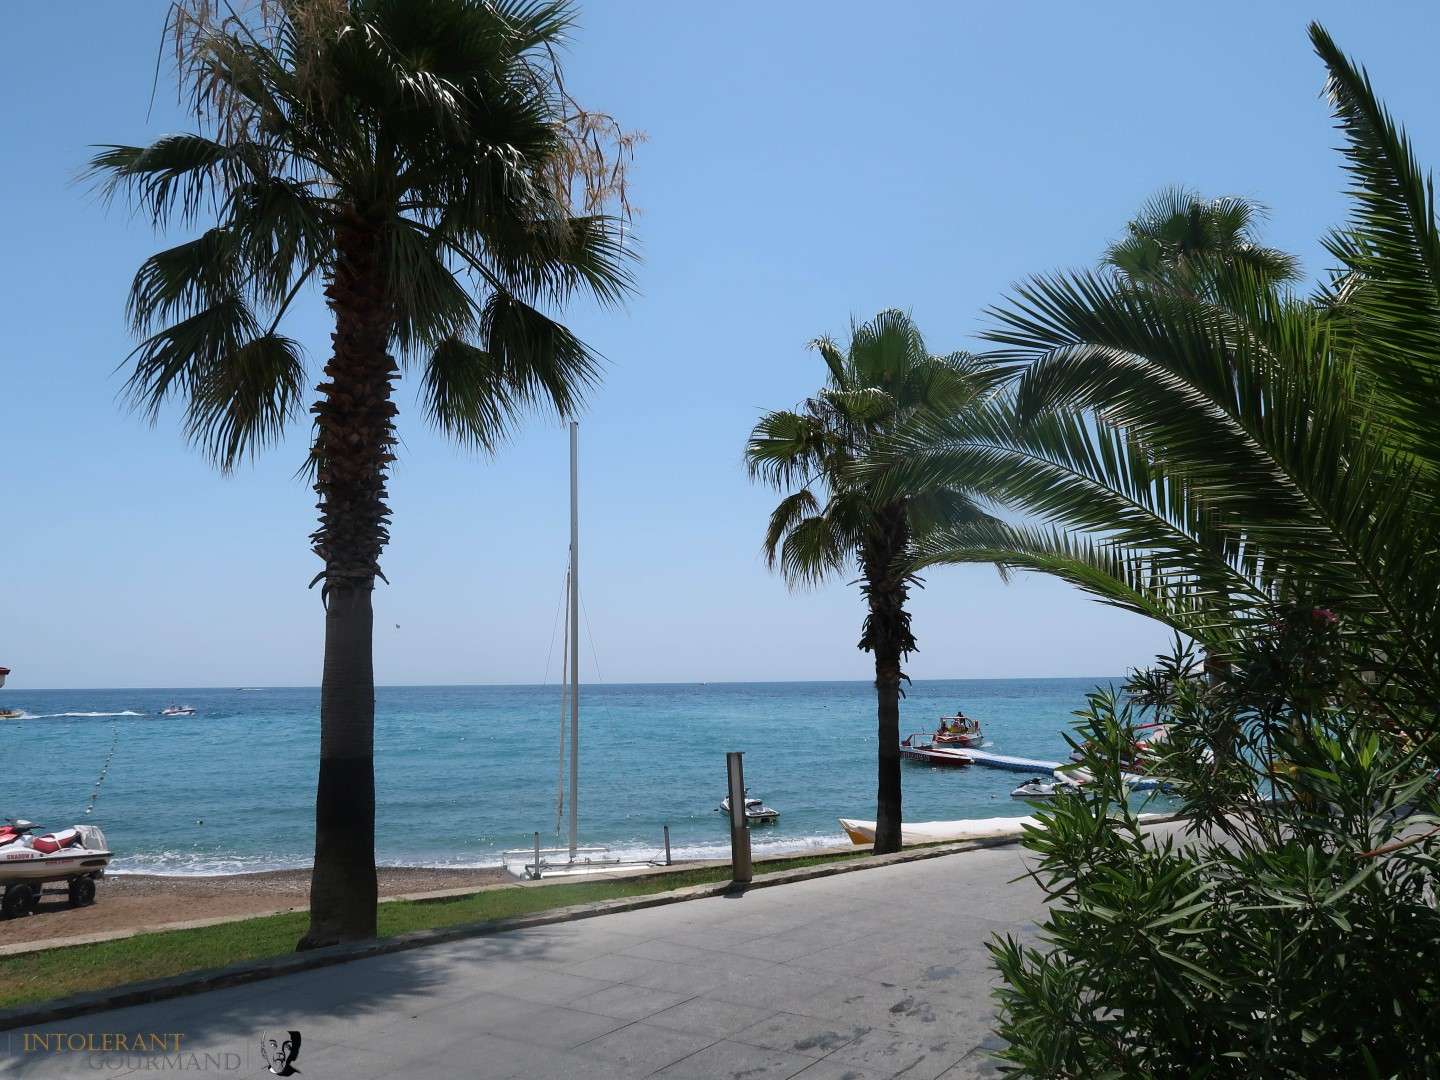 Rixos Sungate Kemer Antalya with Jet 2 Holidays - beach photo, palm trees, and blue skies with the sea in the background. www.intolerantgourmand.com